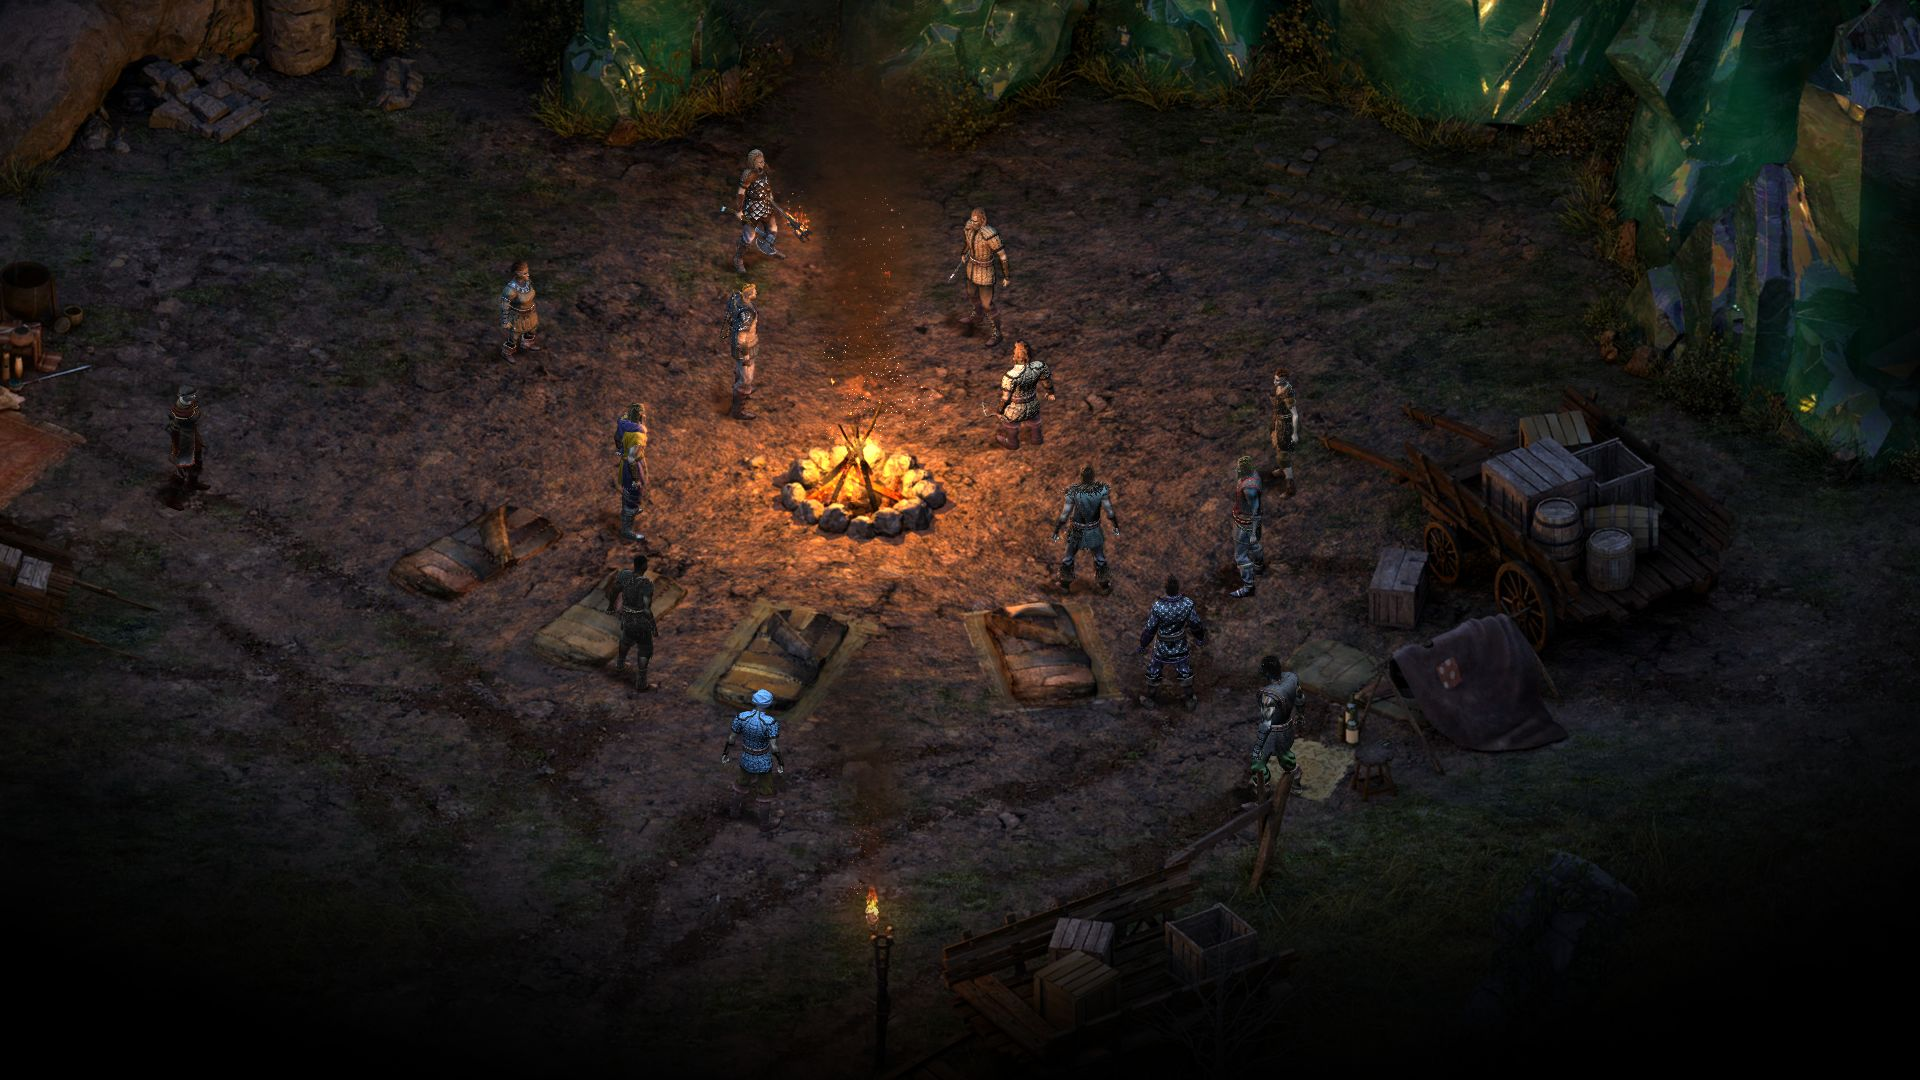 he Encampment, where players begin their journey in Pillars of Eternity.